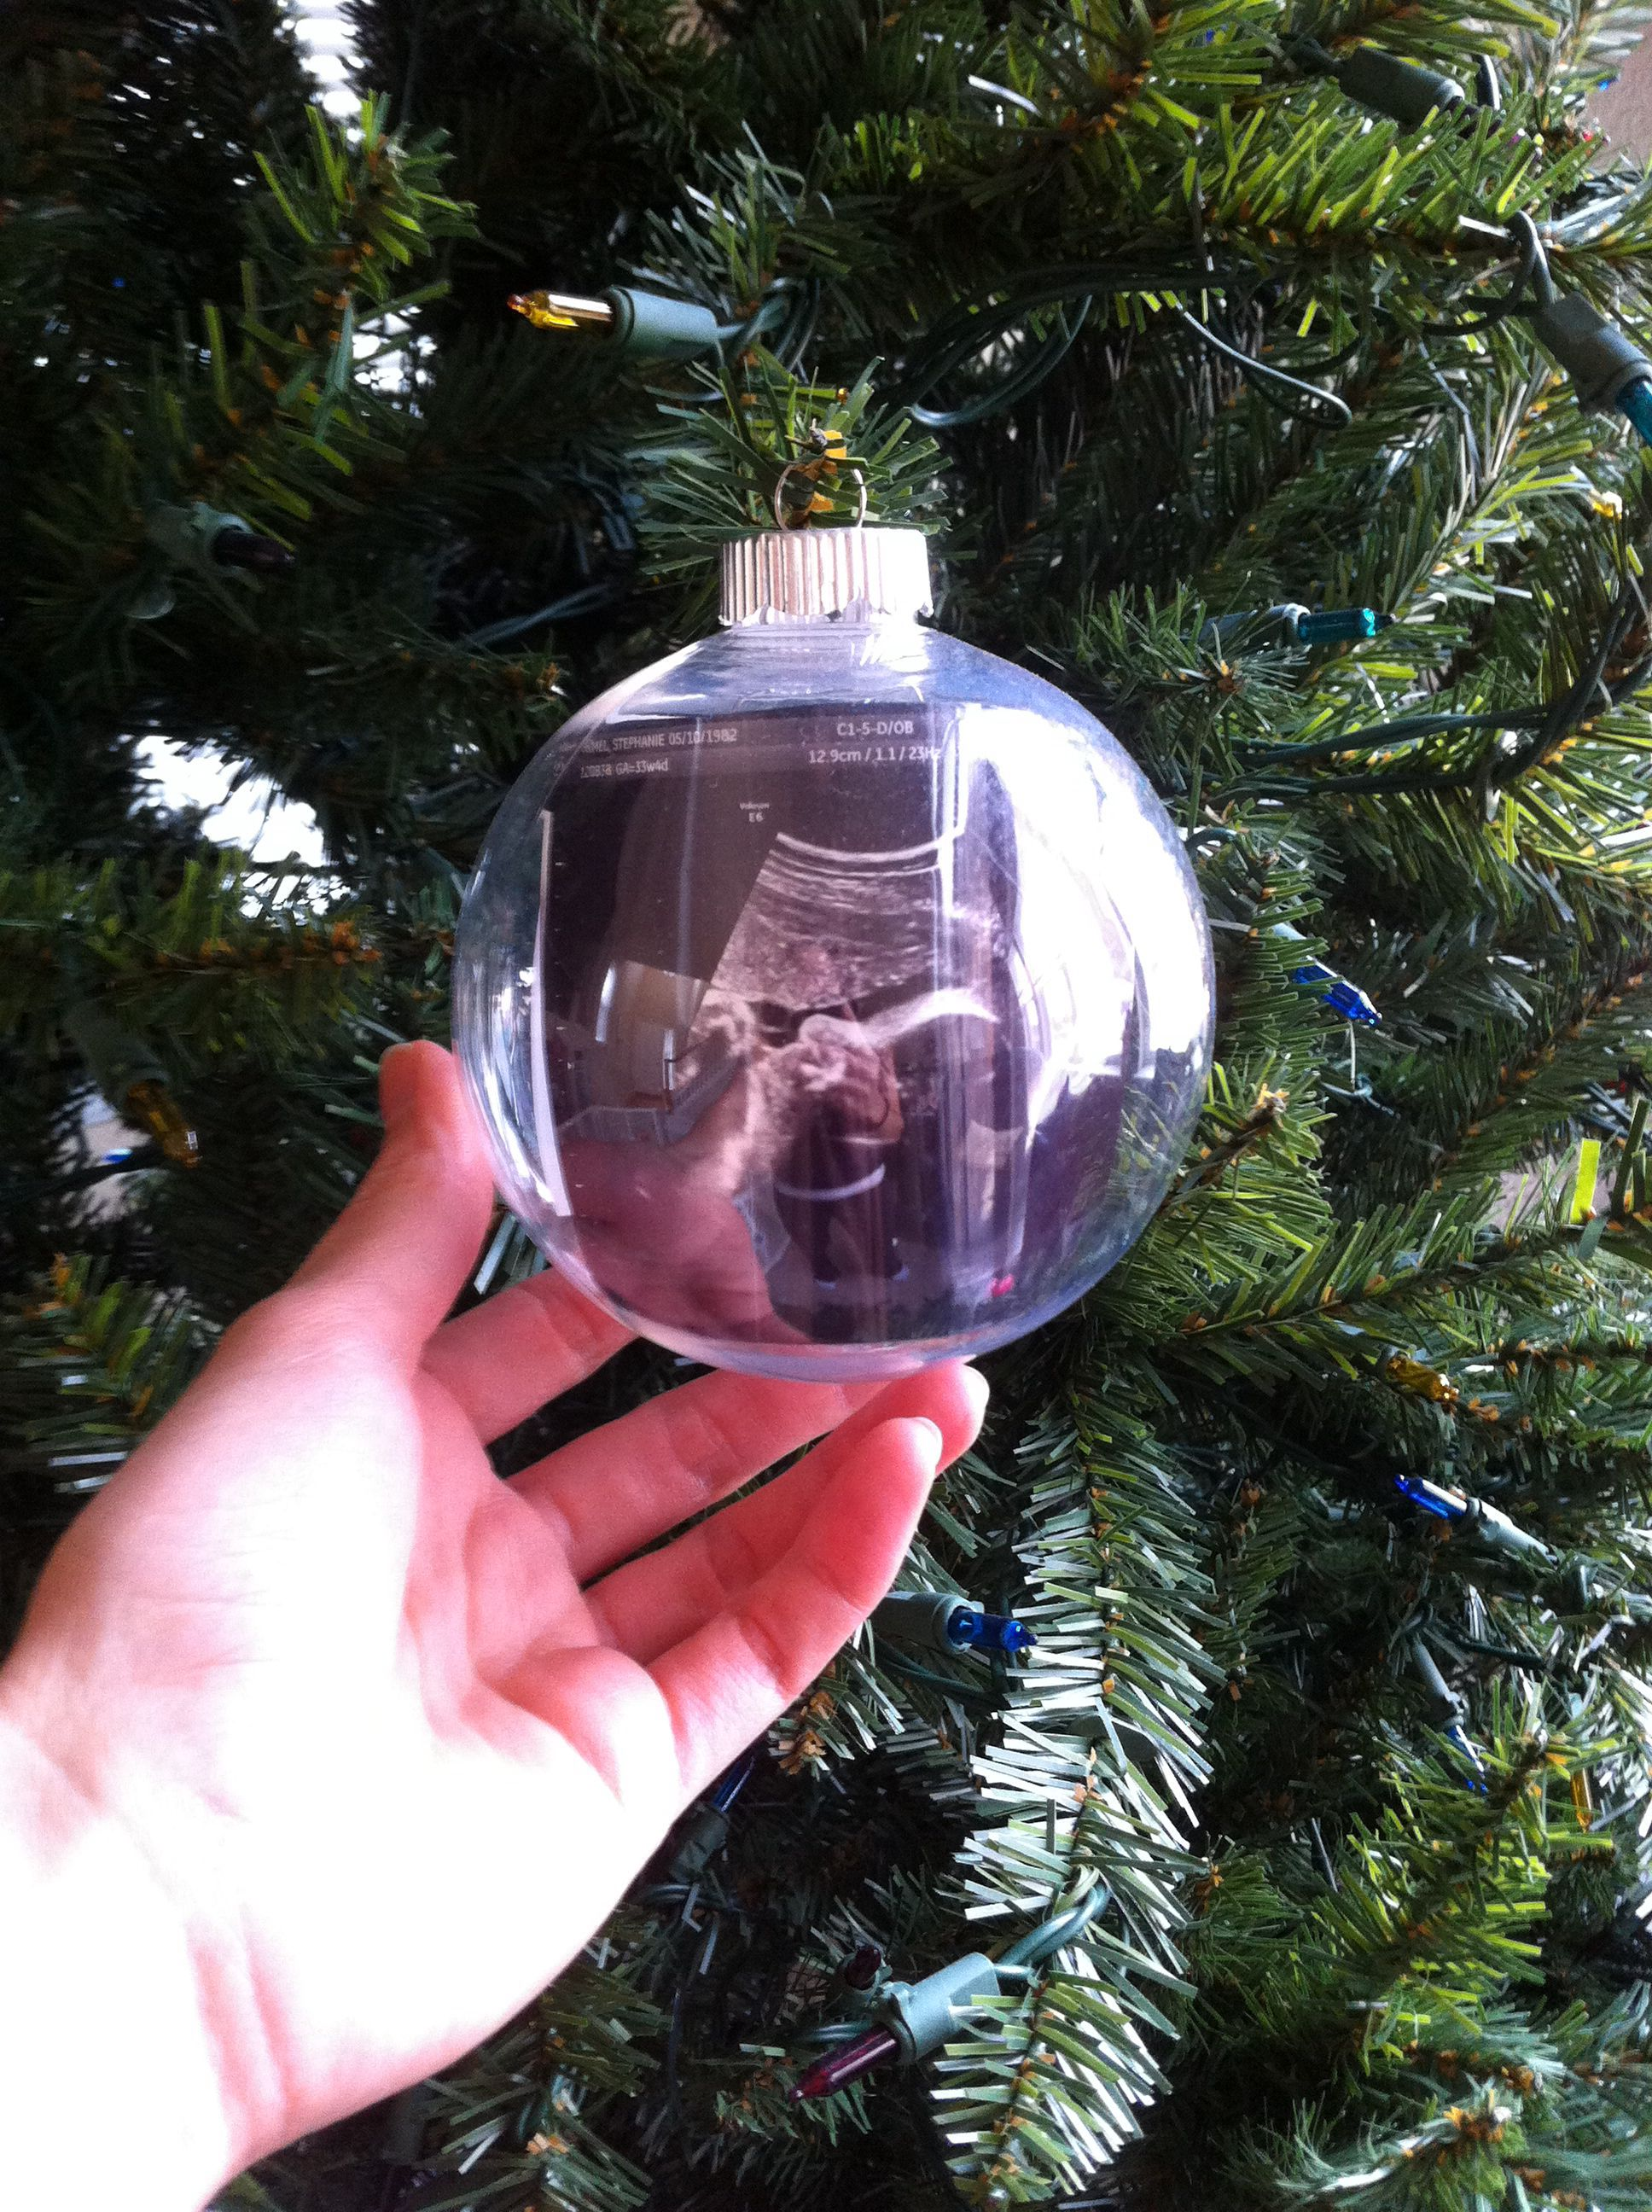 Ultrasound Ornaments Clear Plastic Ornaments From Joann S And Us Pics Perfect Time Capsule To Diy Projects Christmas Gifts Picture Ornaments Christmas Bulbs